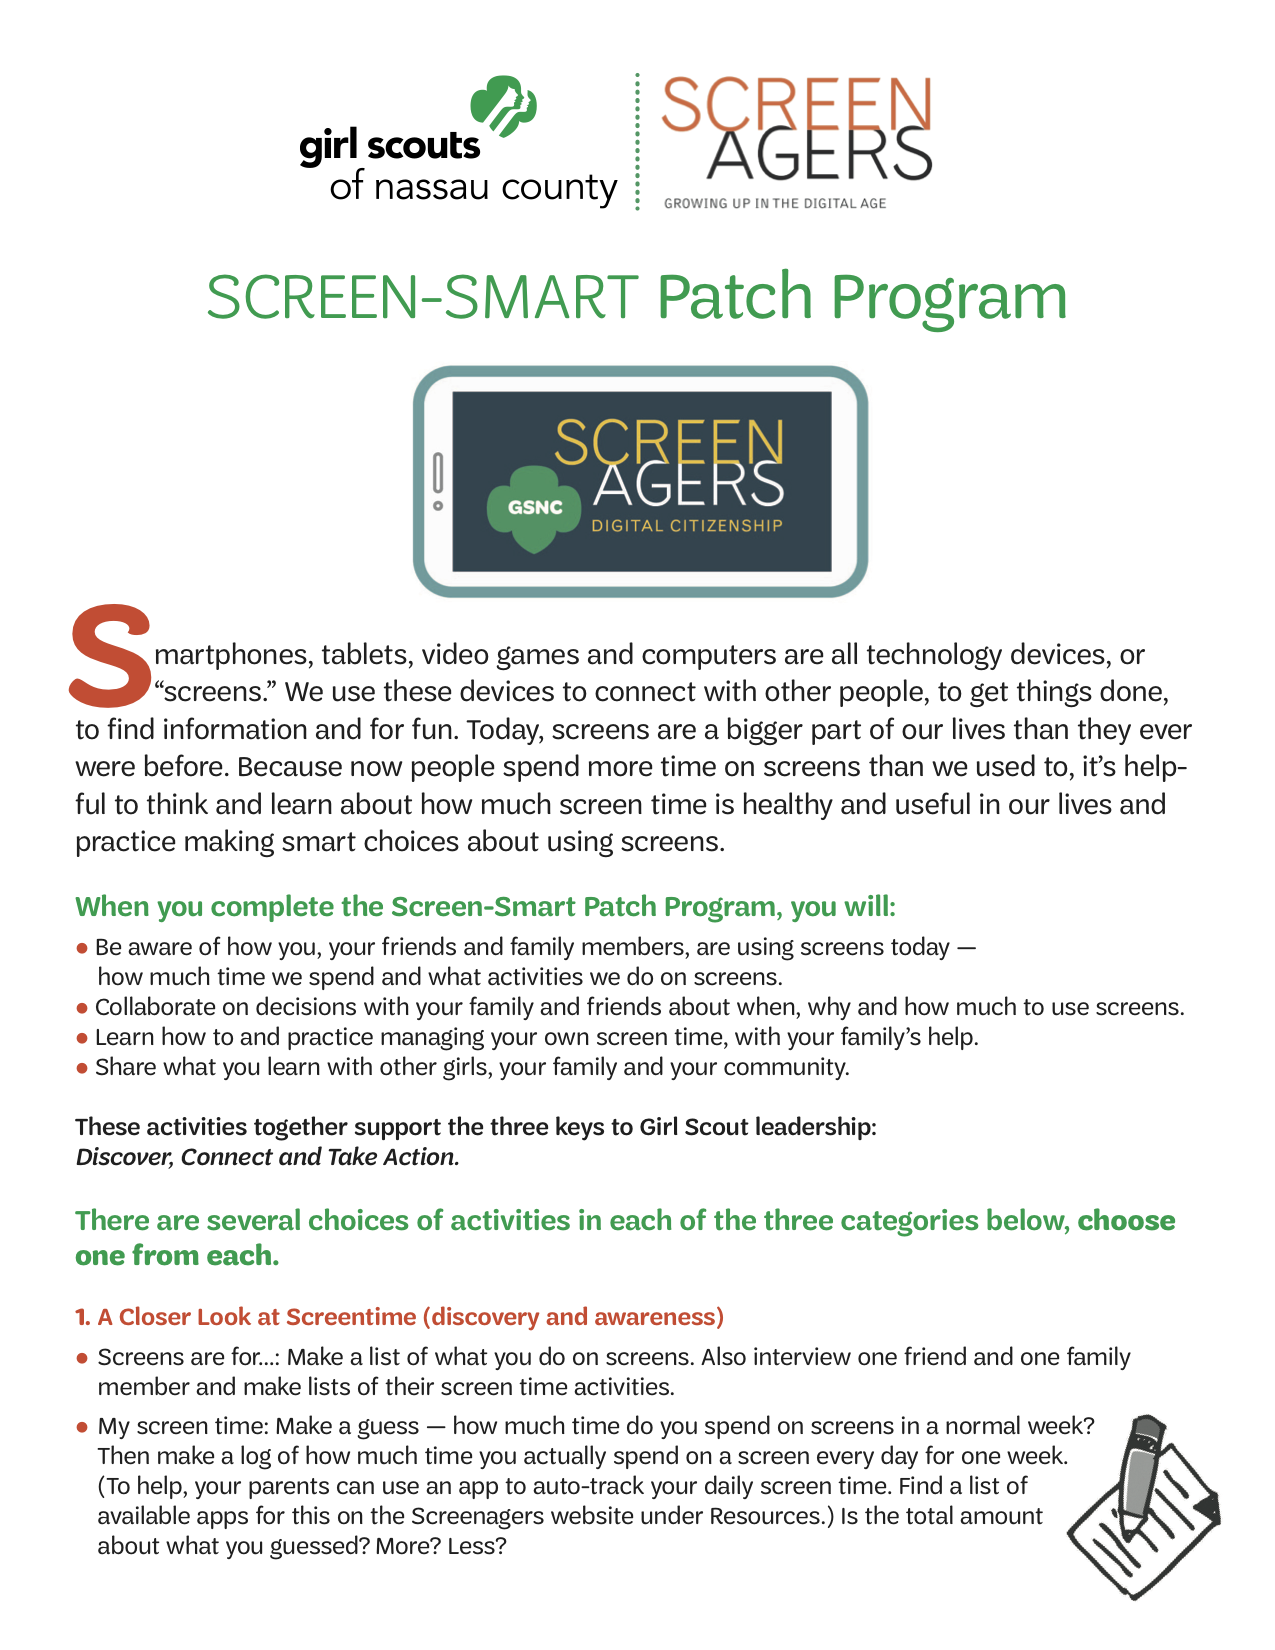 Girl Scouts Patch Program Page 1.png